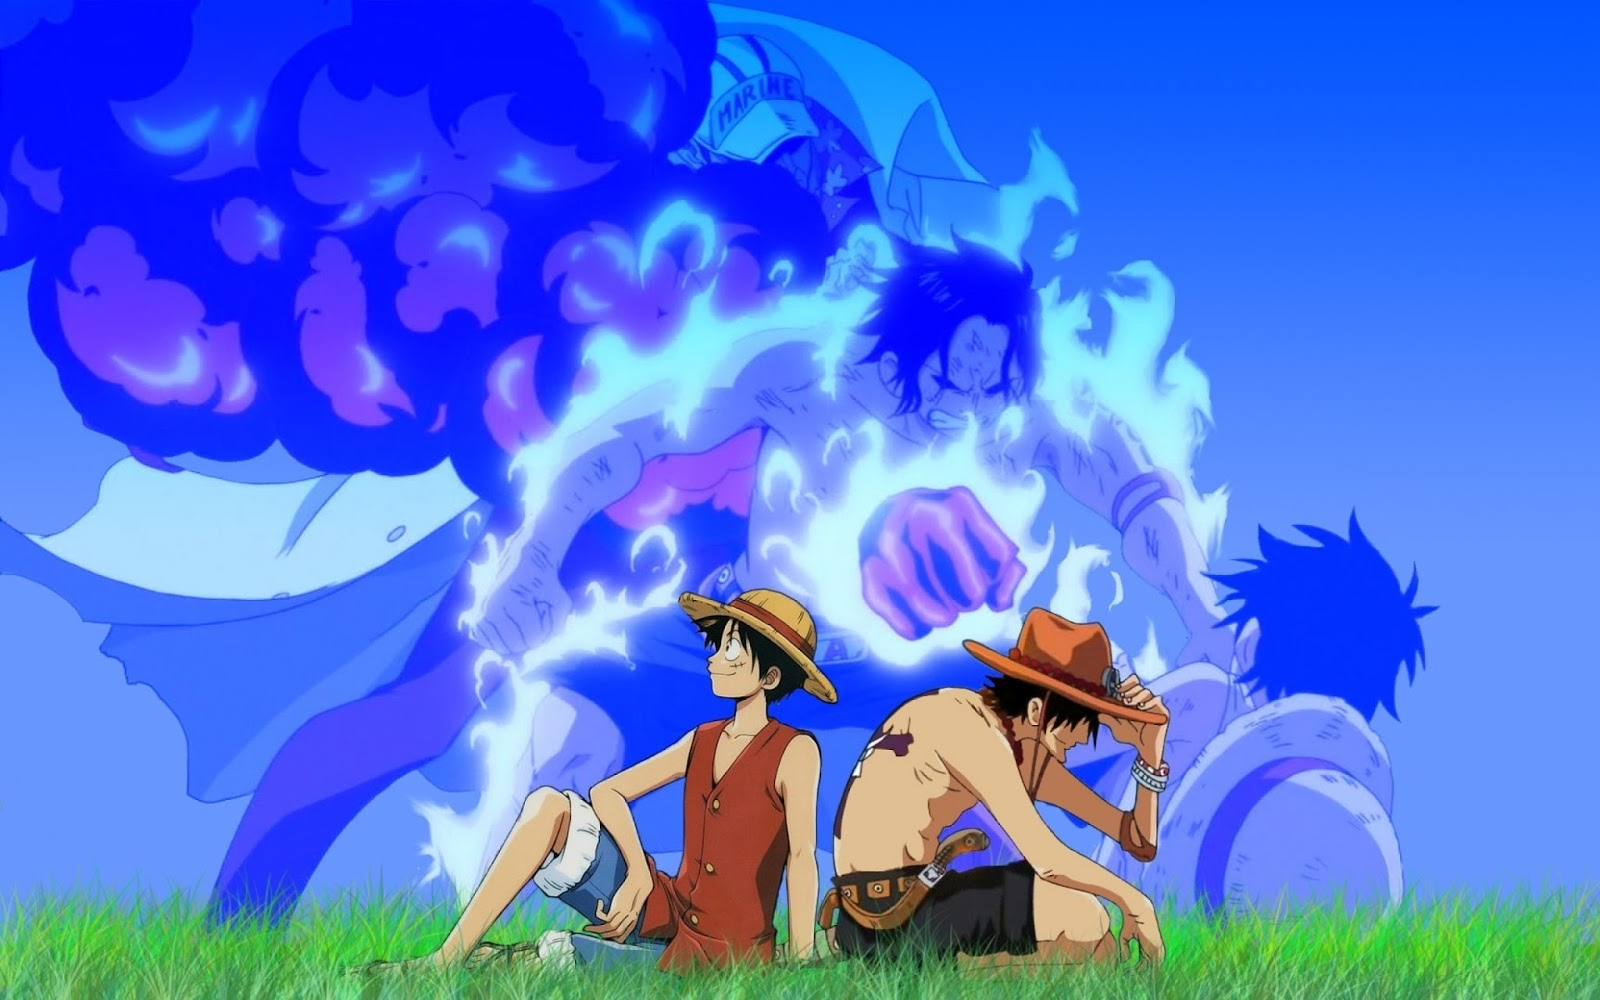 Gambar Lucu Bergerak One Piece Terbaru Display Picture One Piece Wallpaper Luffy And Ace 1600x1000 Wallpaper Teahub Io